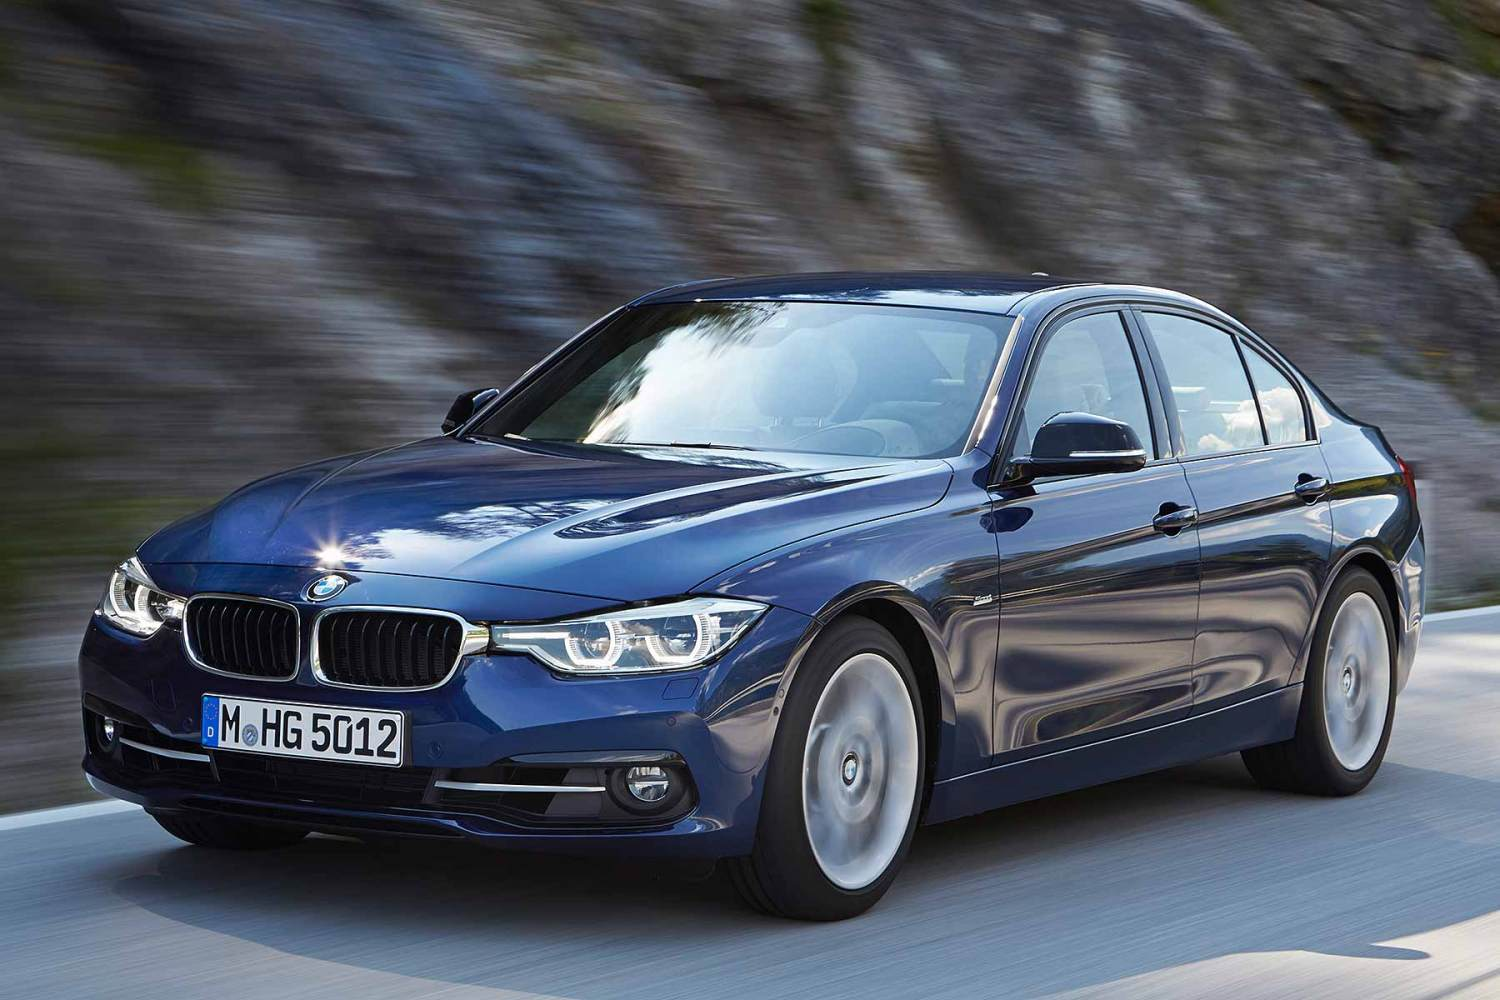 Shortage of premium carmakers as BMW, Audi and Mercedes go mainstream